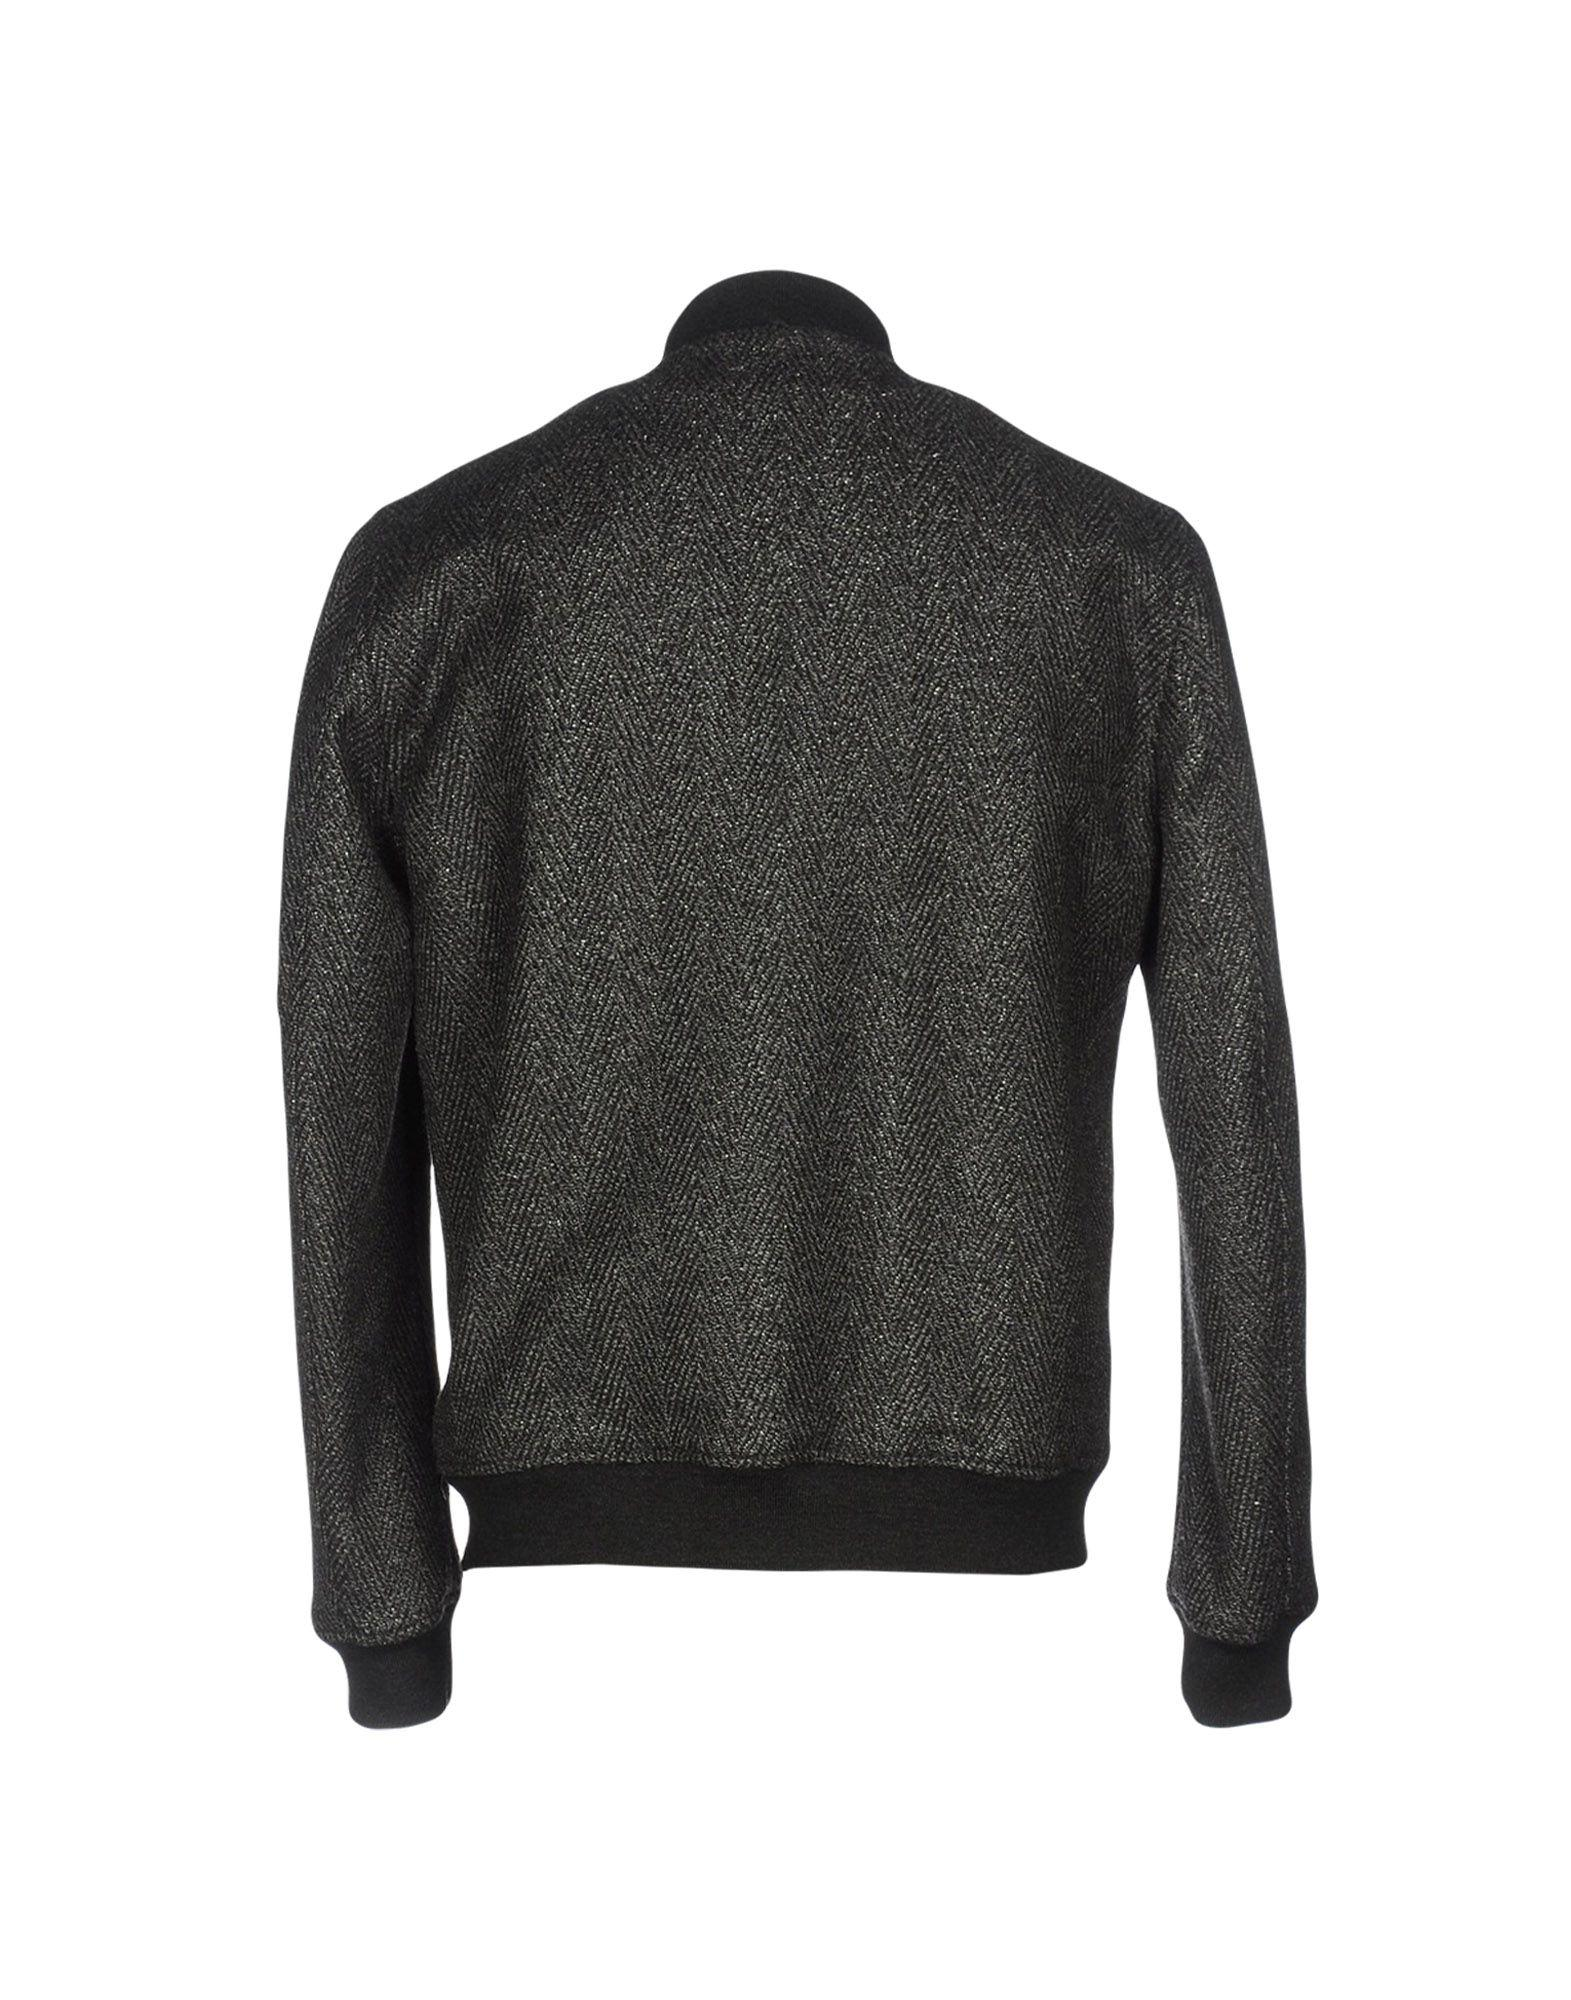 Mauro Grifoni Wool Jacket in Grey (Grey) for Men